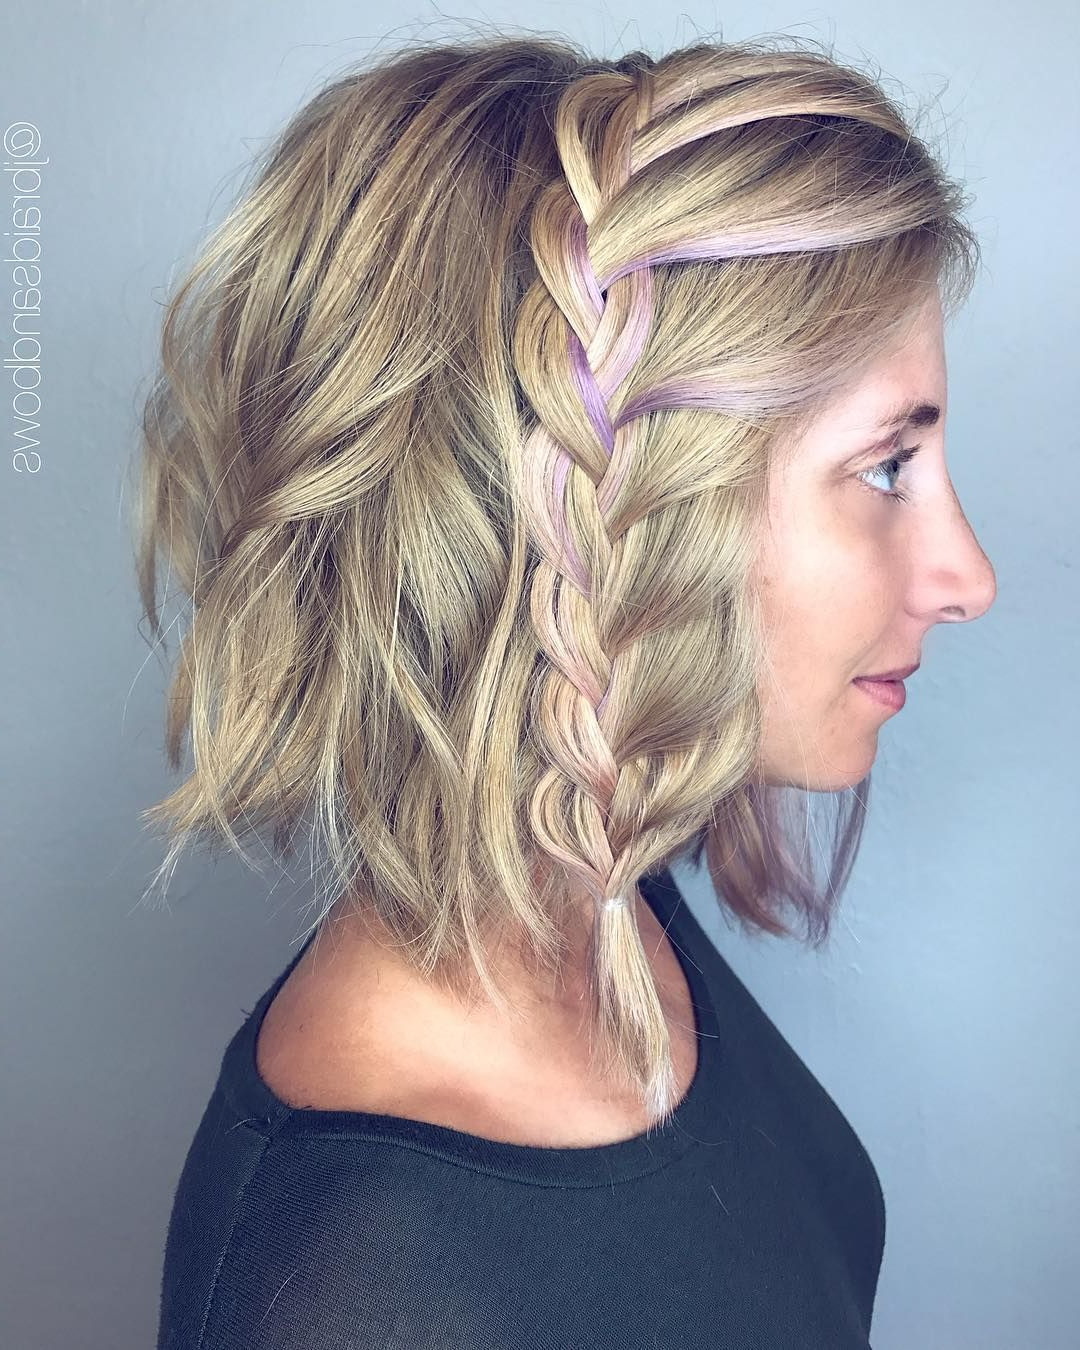 70 Best Medium Length Hairstyles – Shoulder Length Haircuts With 2019 Braided Shoulder Length Hairstyles (View 2 of 20)